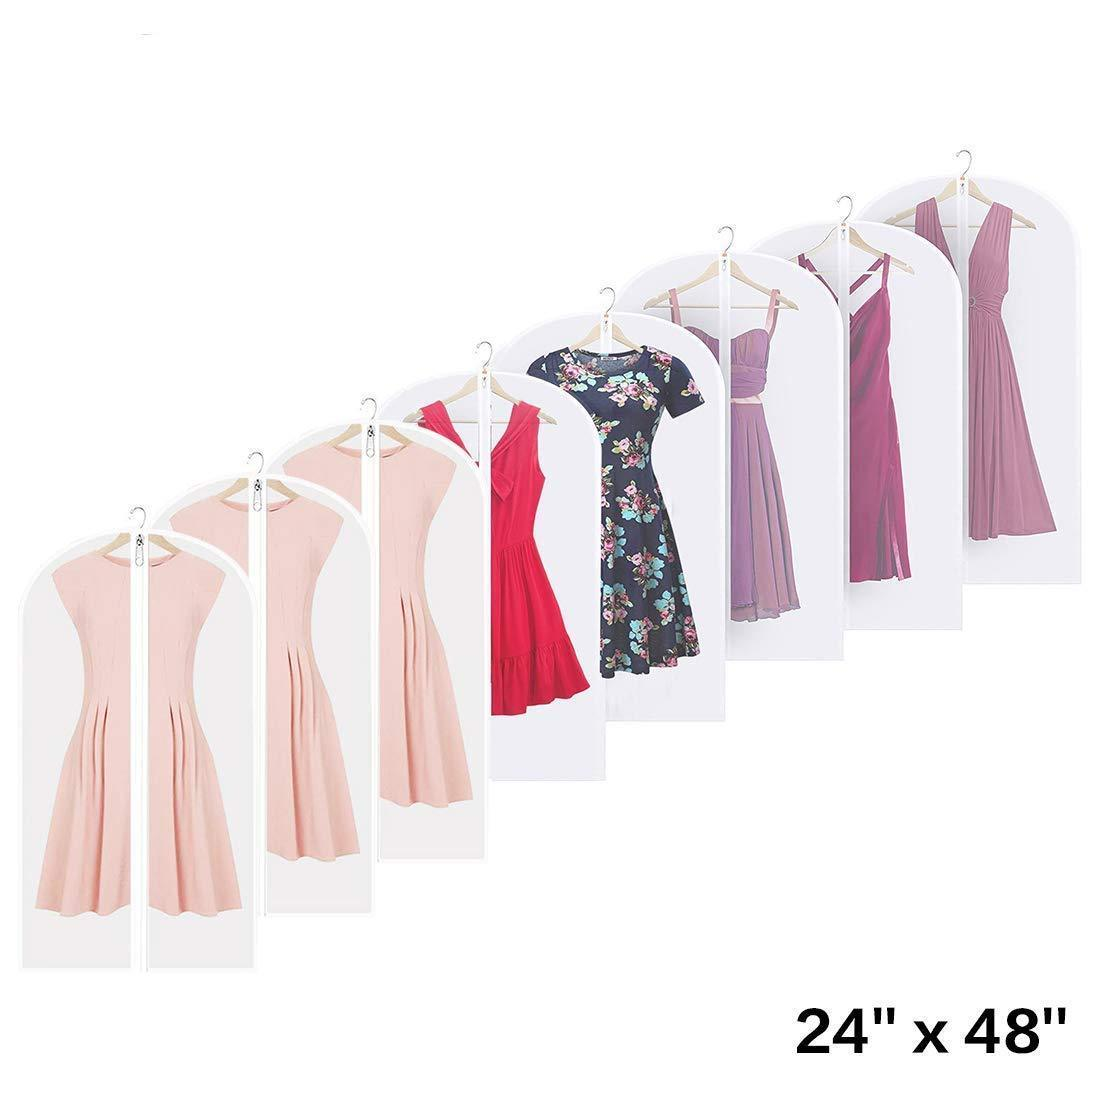 Shop linseray 8 pack hanging garment bag 24 x 48 suit bags breathable moth proof garment cover with full zipper for long dress dance costumes suits gowns coats